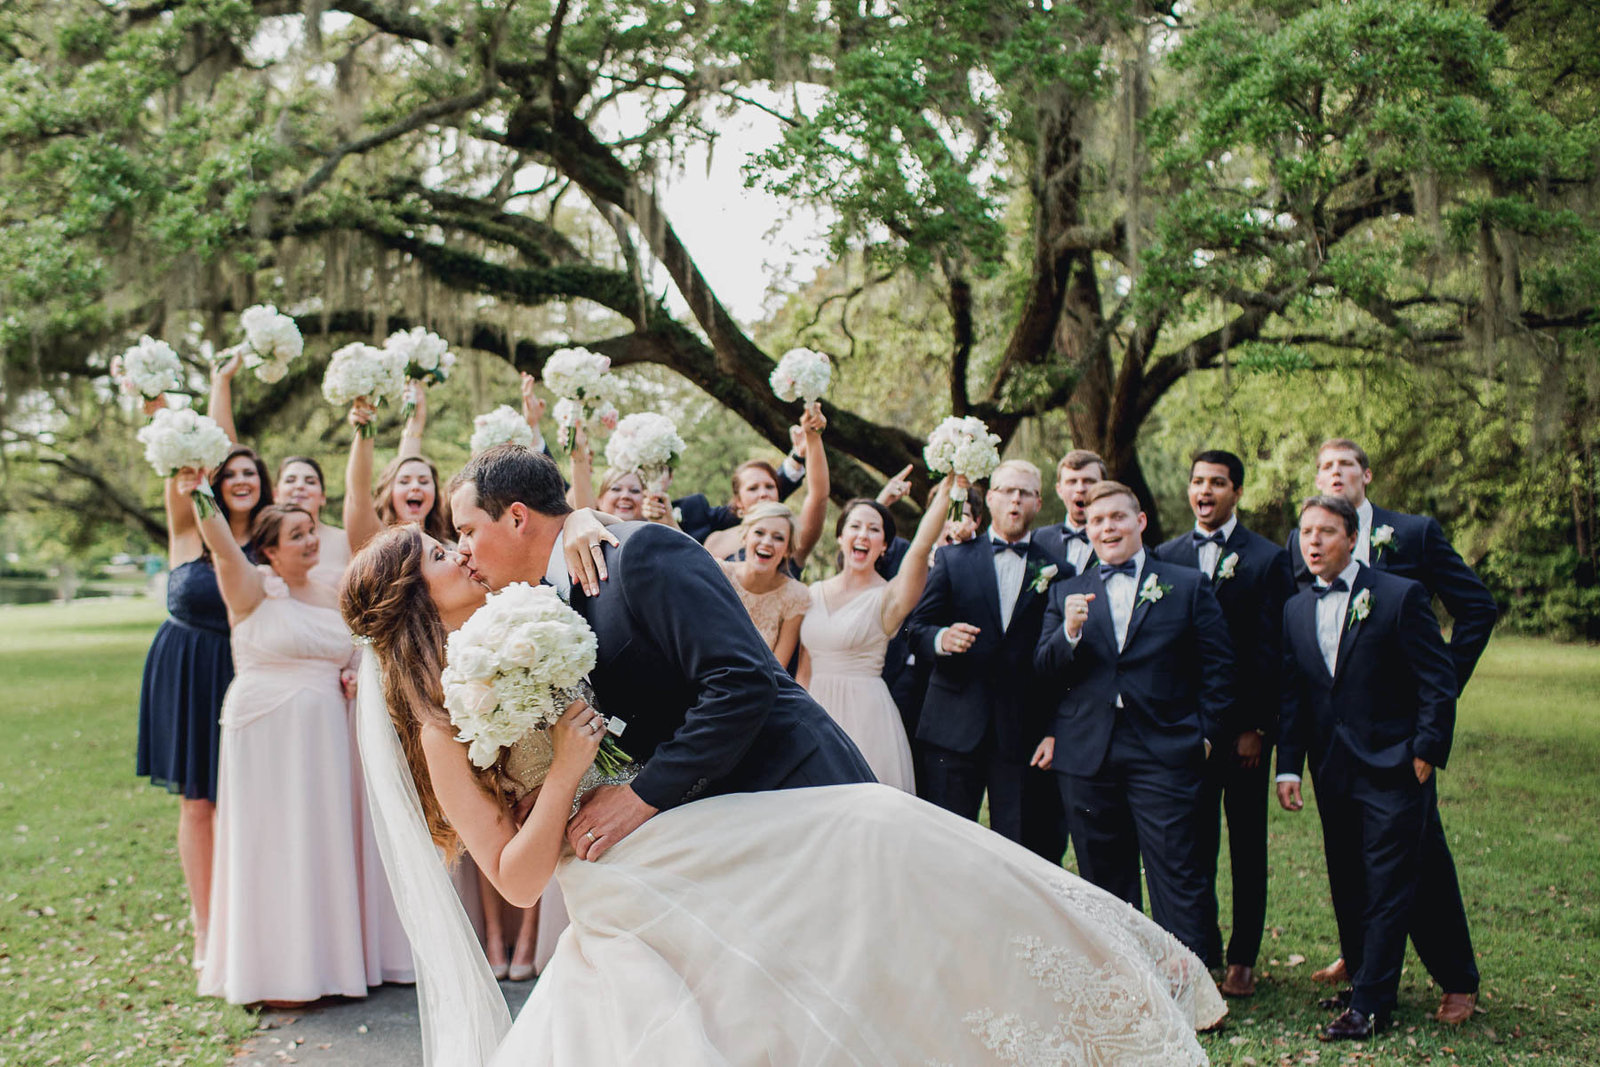 Bride and groom kiss while wedding party cheers, Brookgreen Gardens, Murrells Inlet, South Carolina. Kate Timbers Photography.